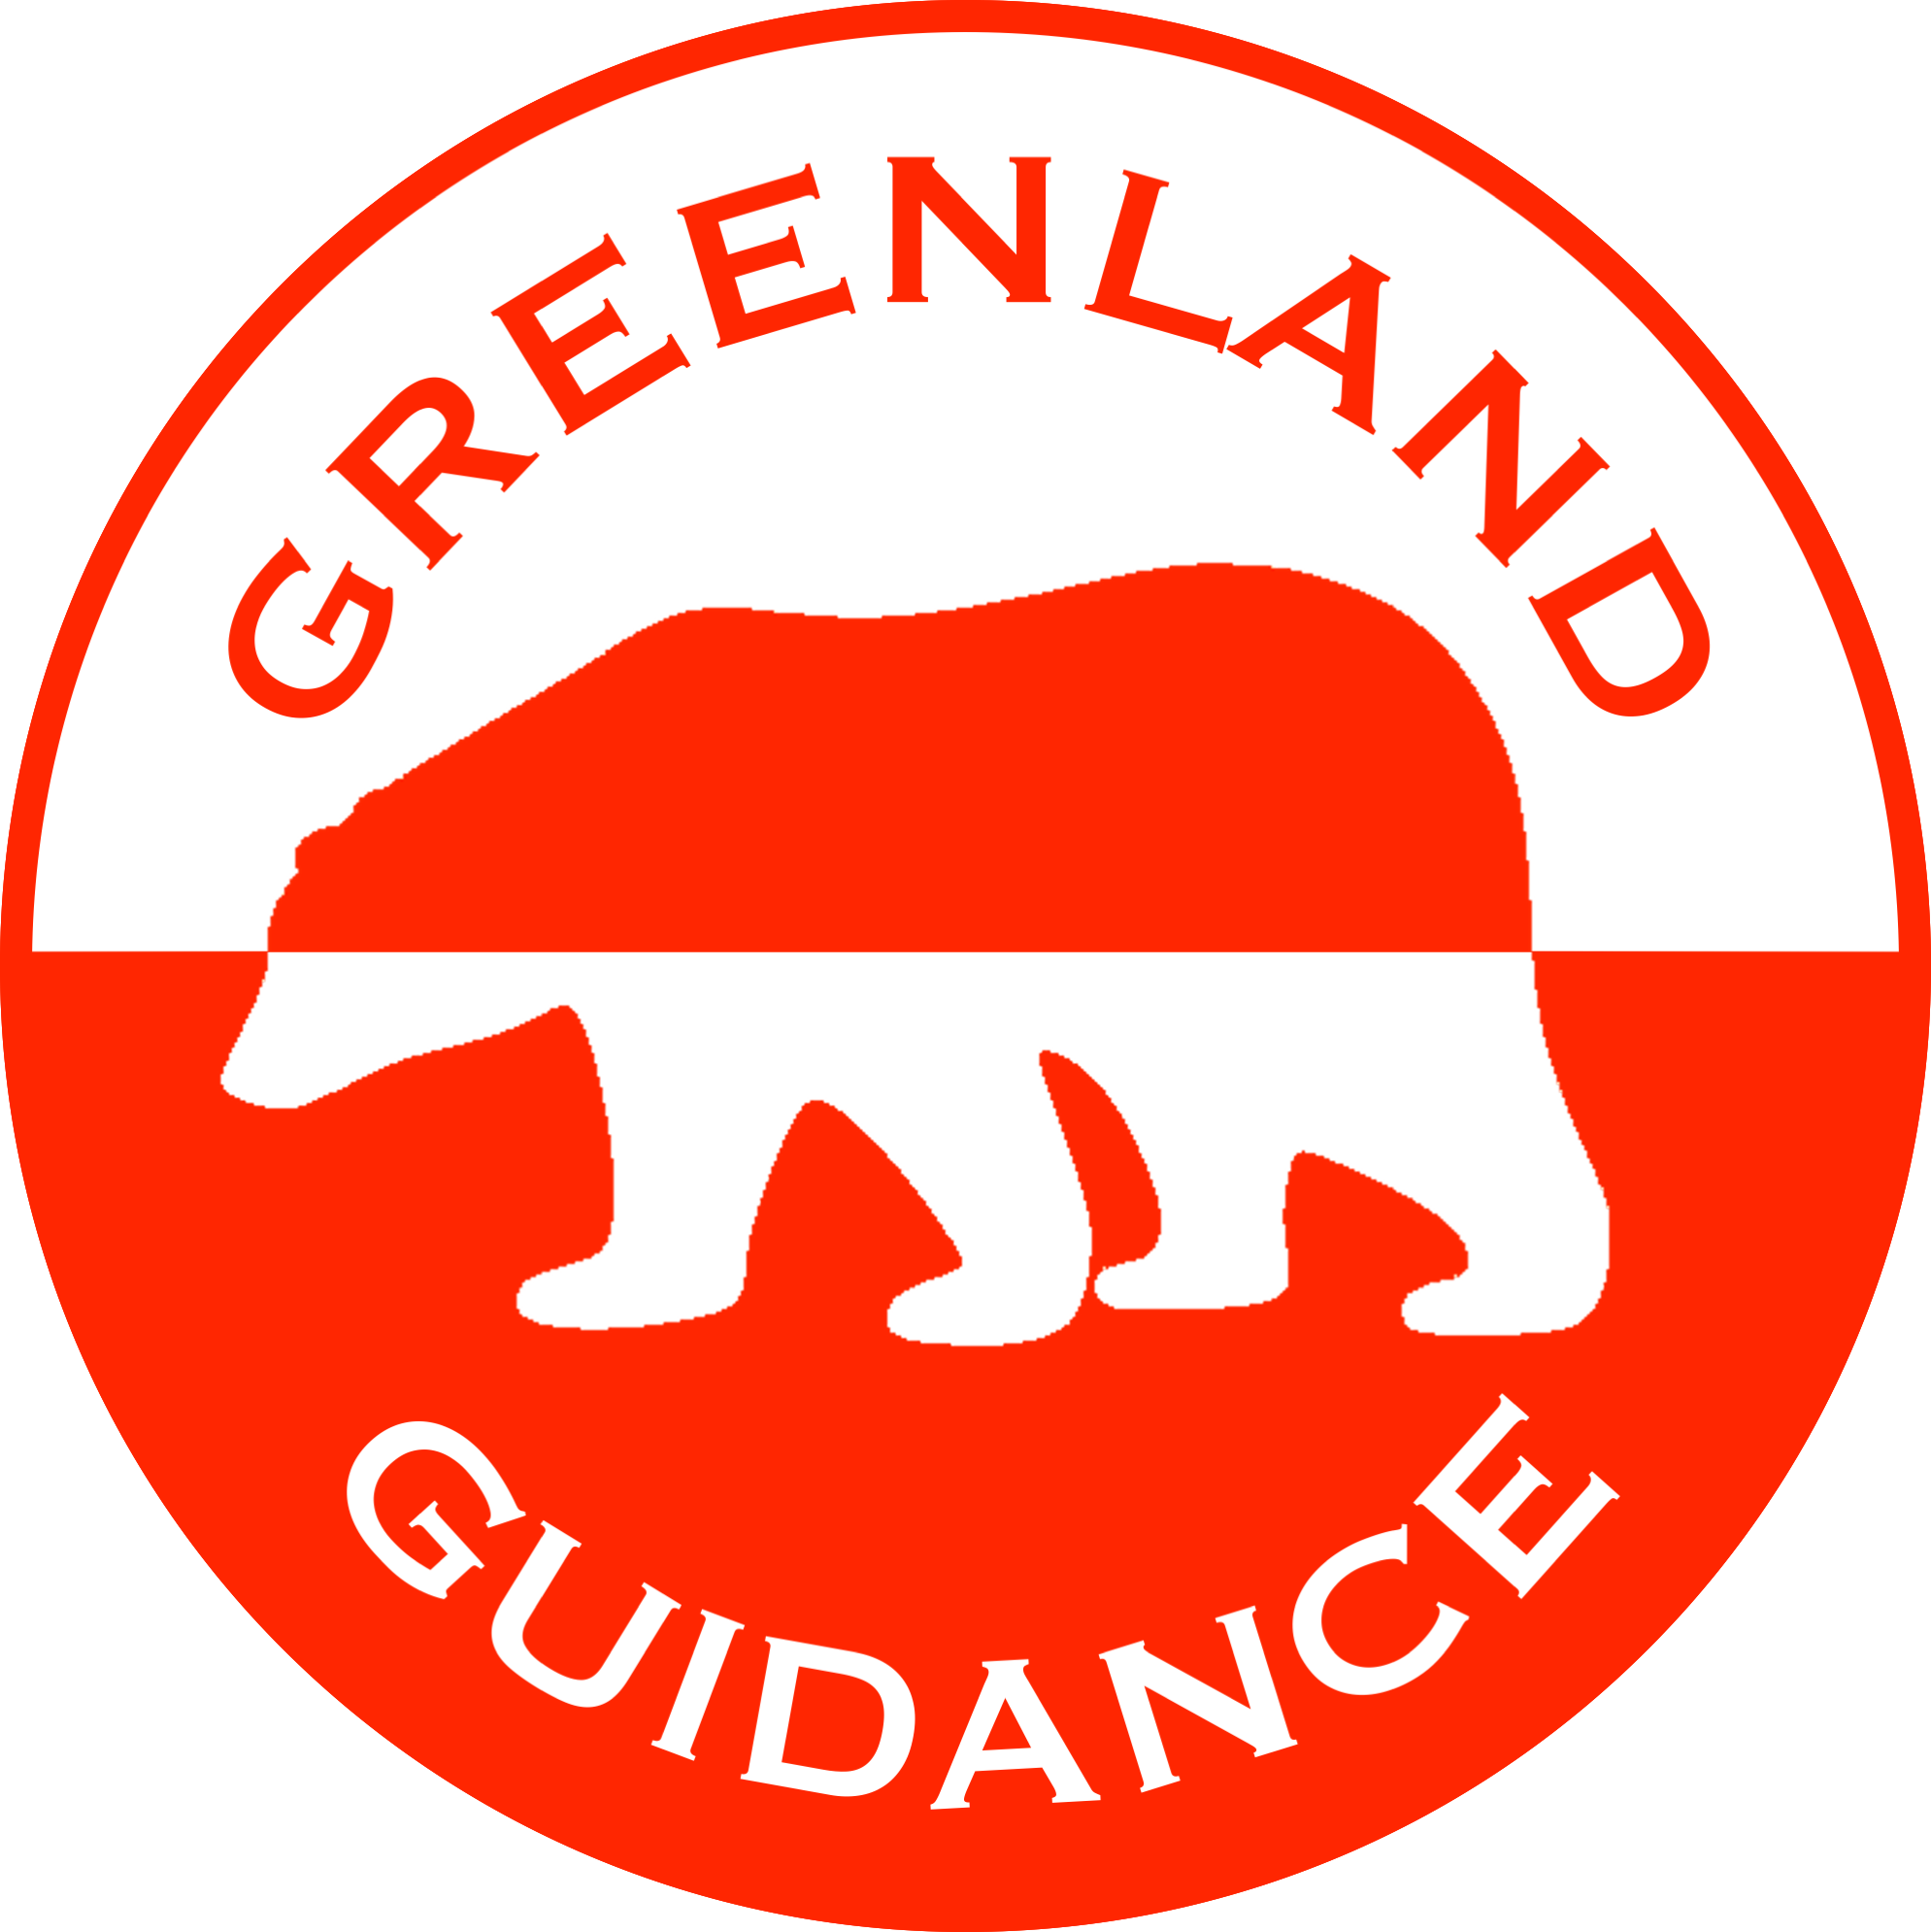 Greenland Guidance